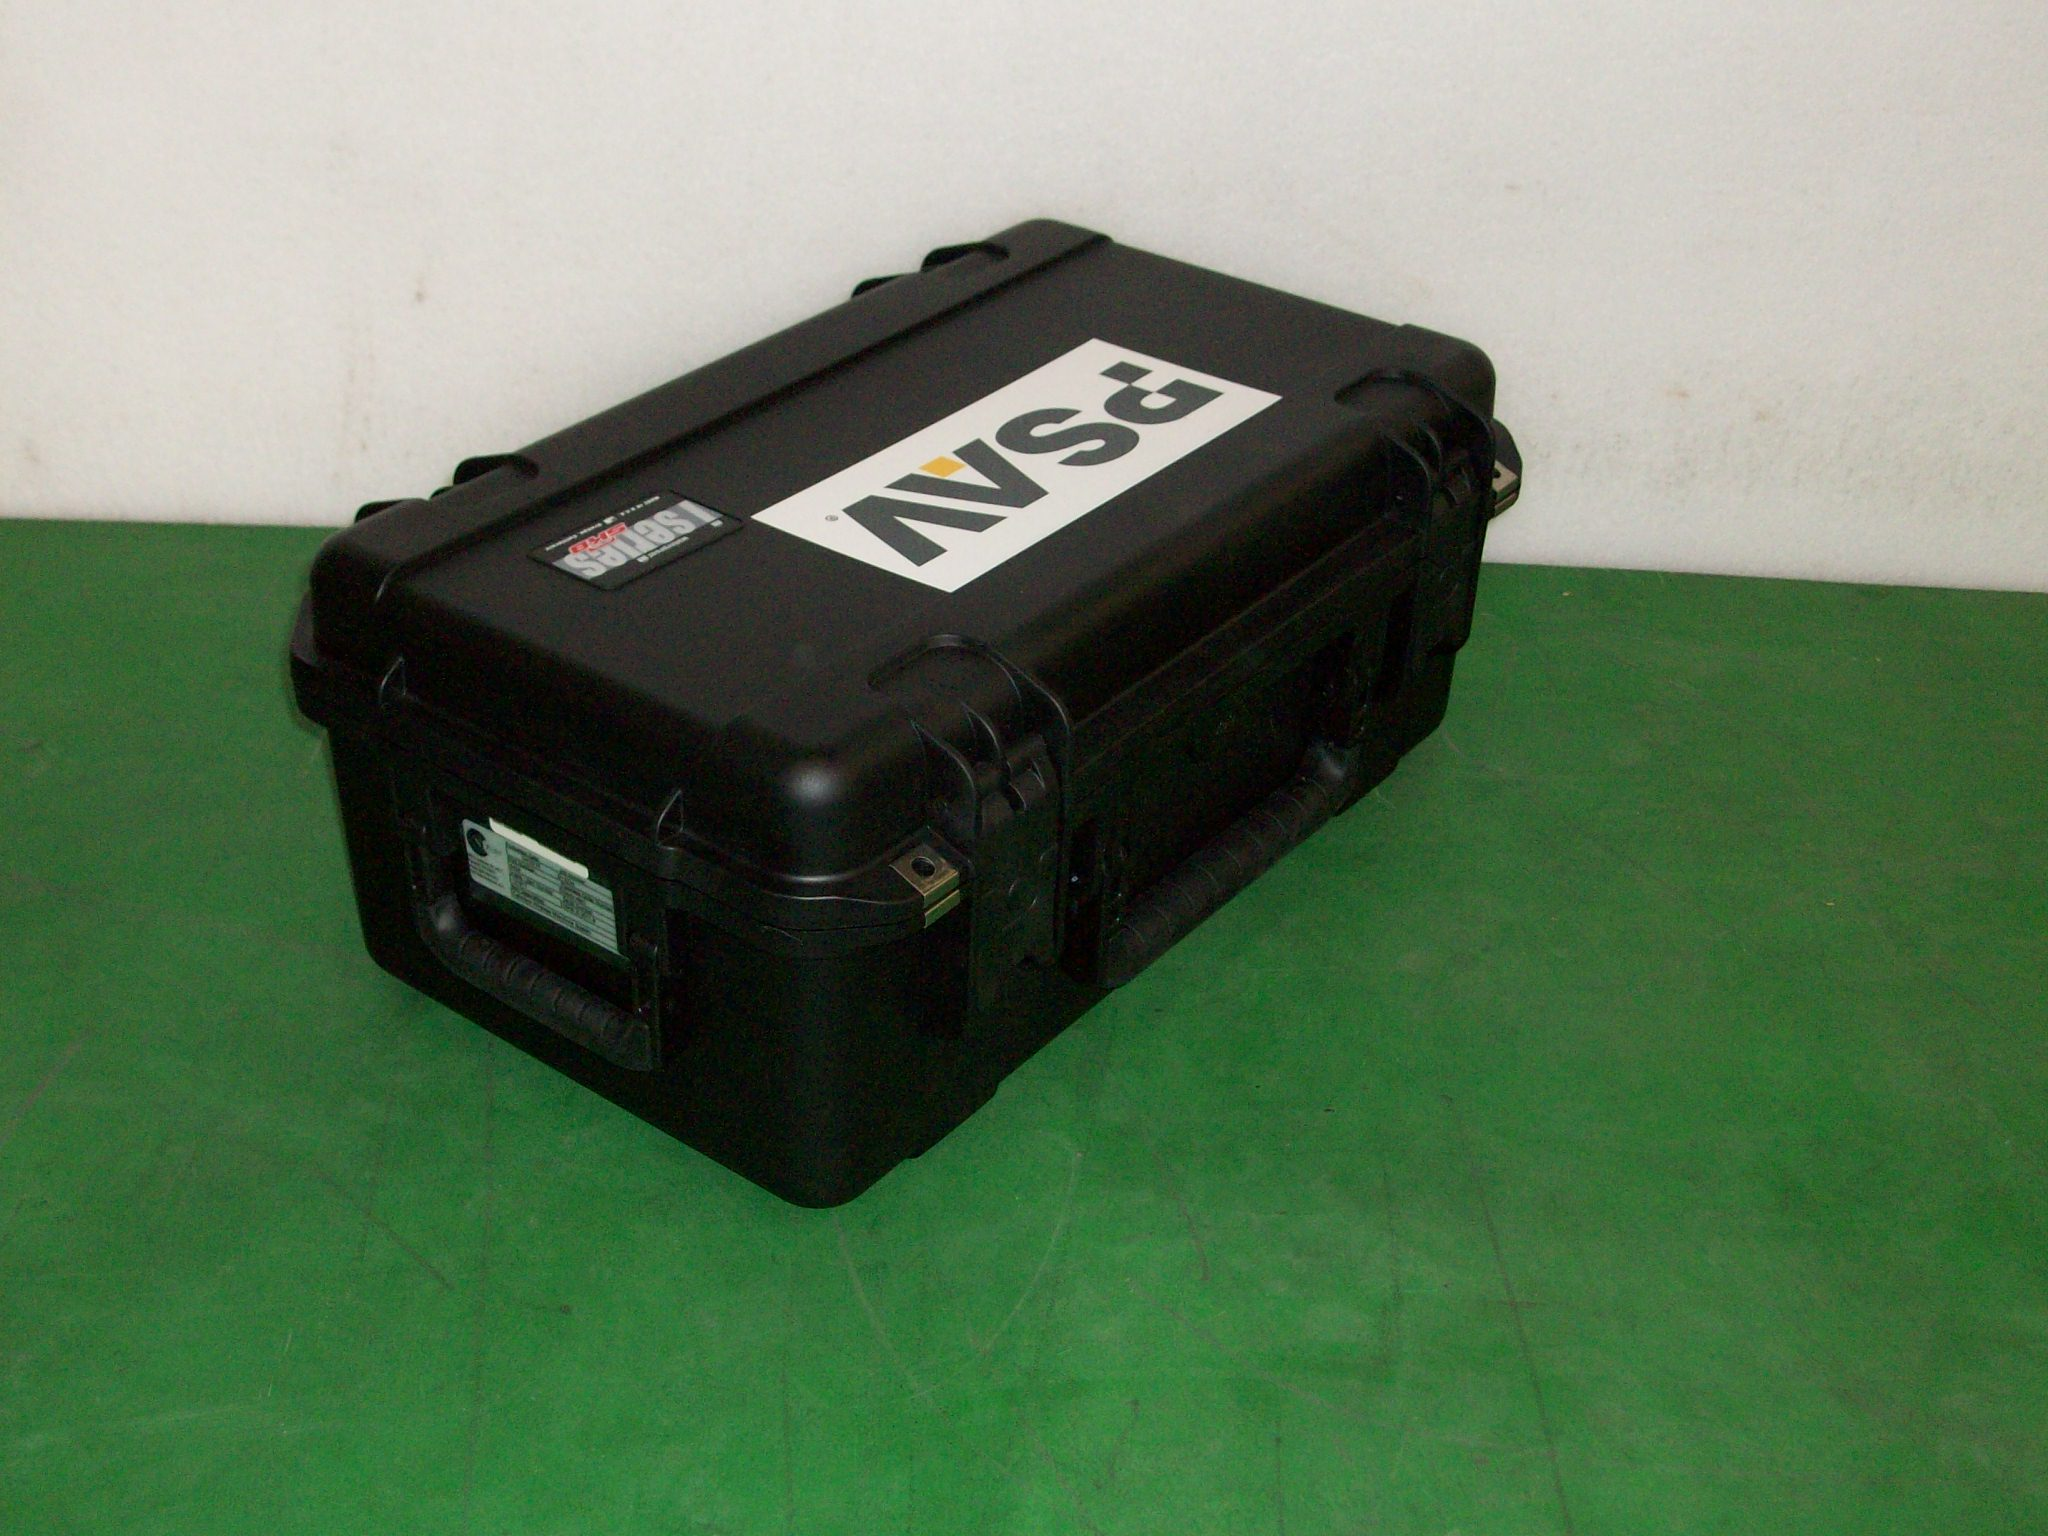 Print # 6424 - SKB 3i-2011-8 Case for Catchbox Wireless Microphone System By Nelson Case Corp